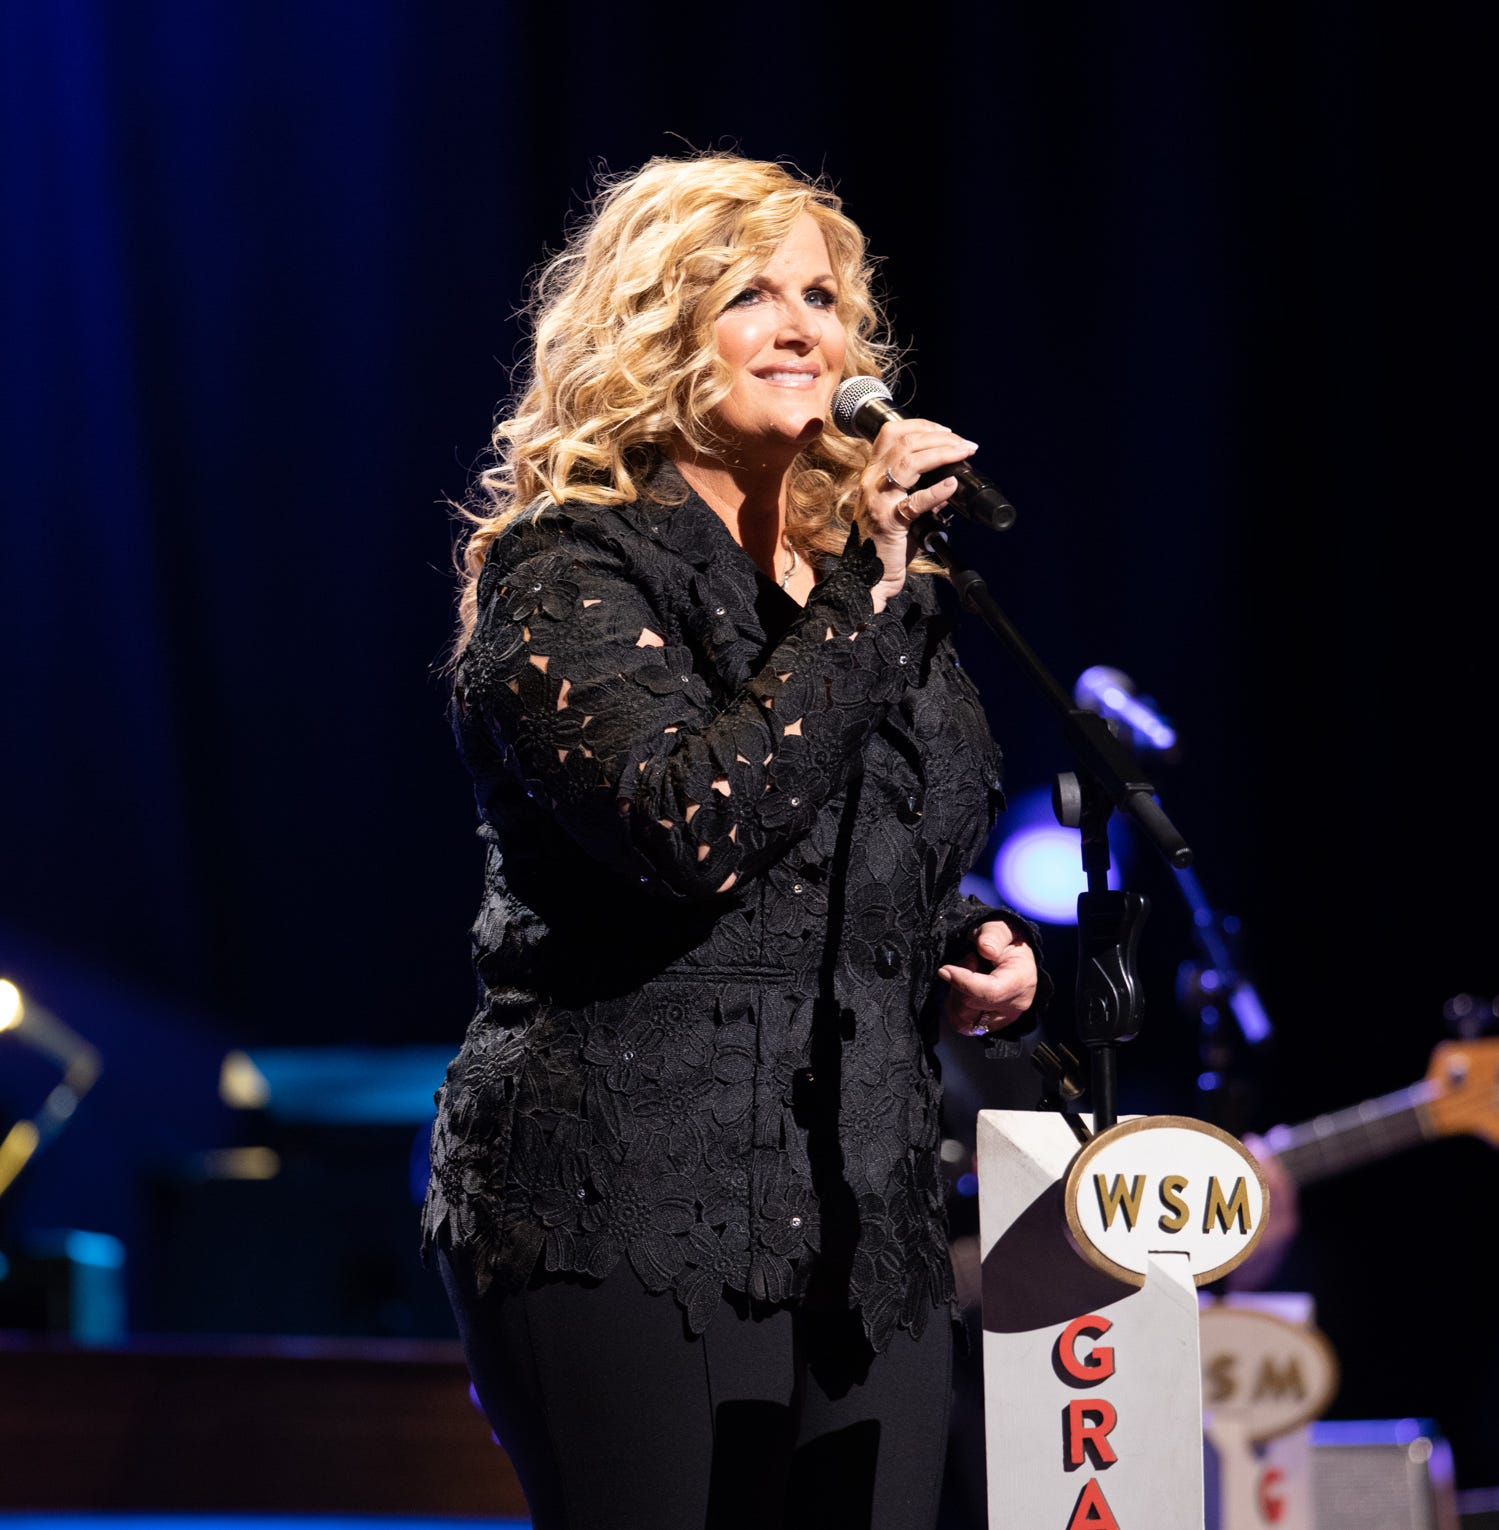 Watch: Trisha Yearwood wears Patsy Cline's necklace to celebrate her 20th Opry anniversary